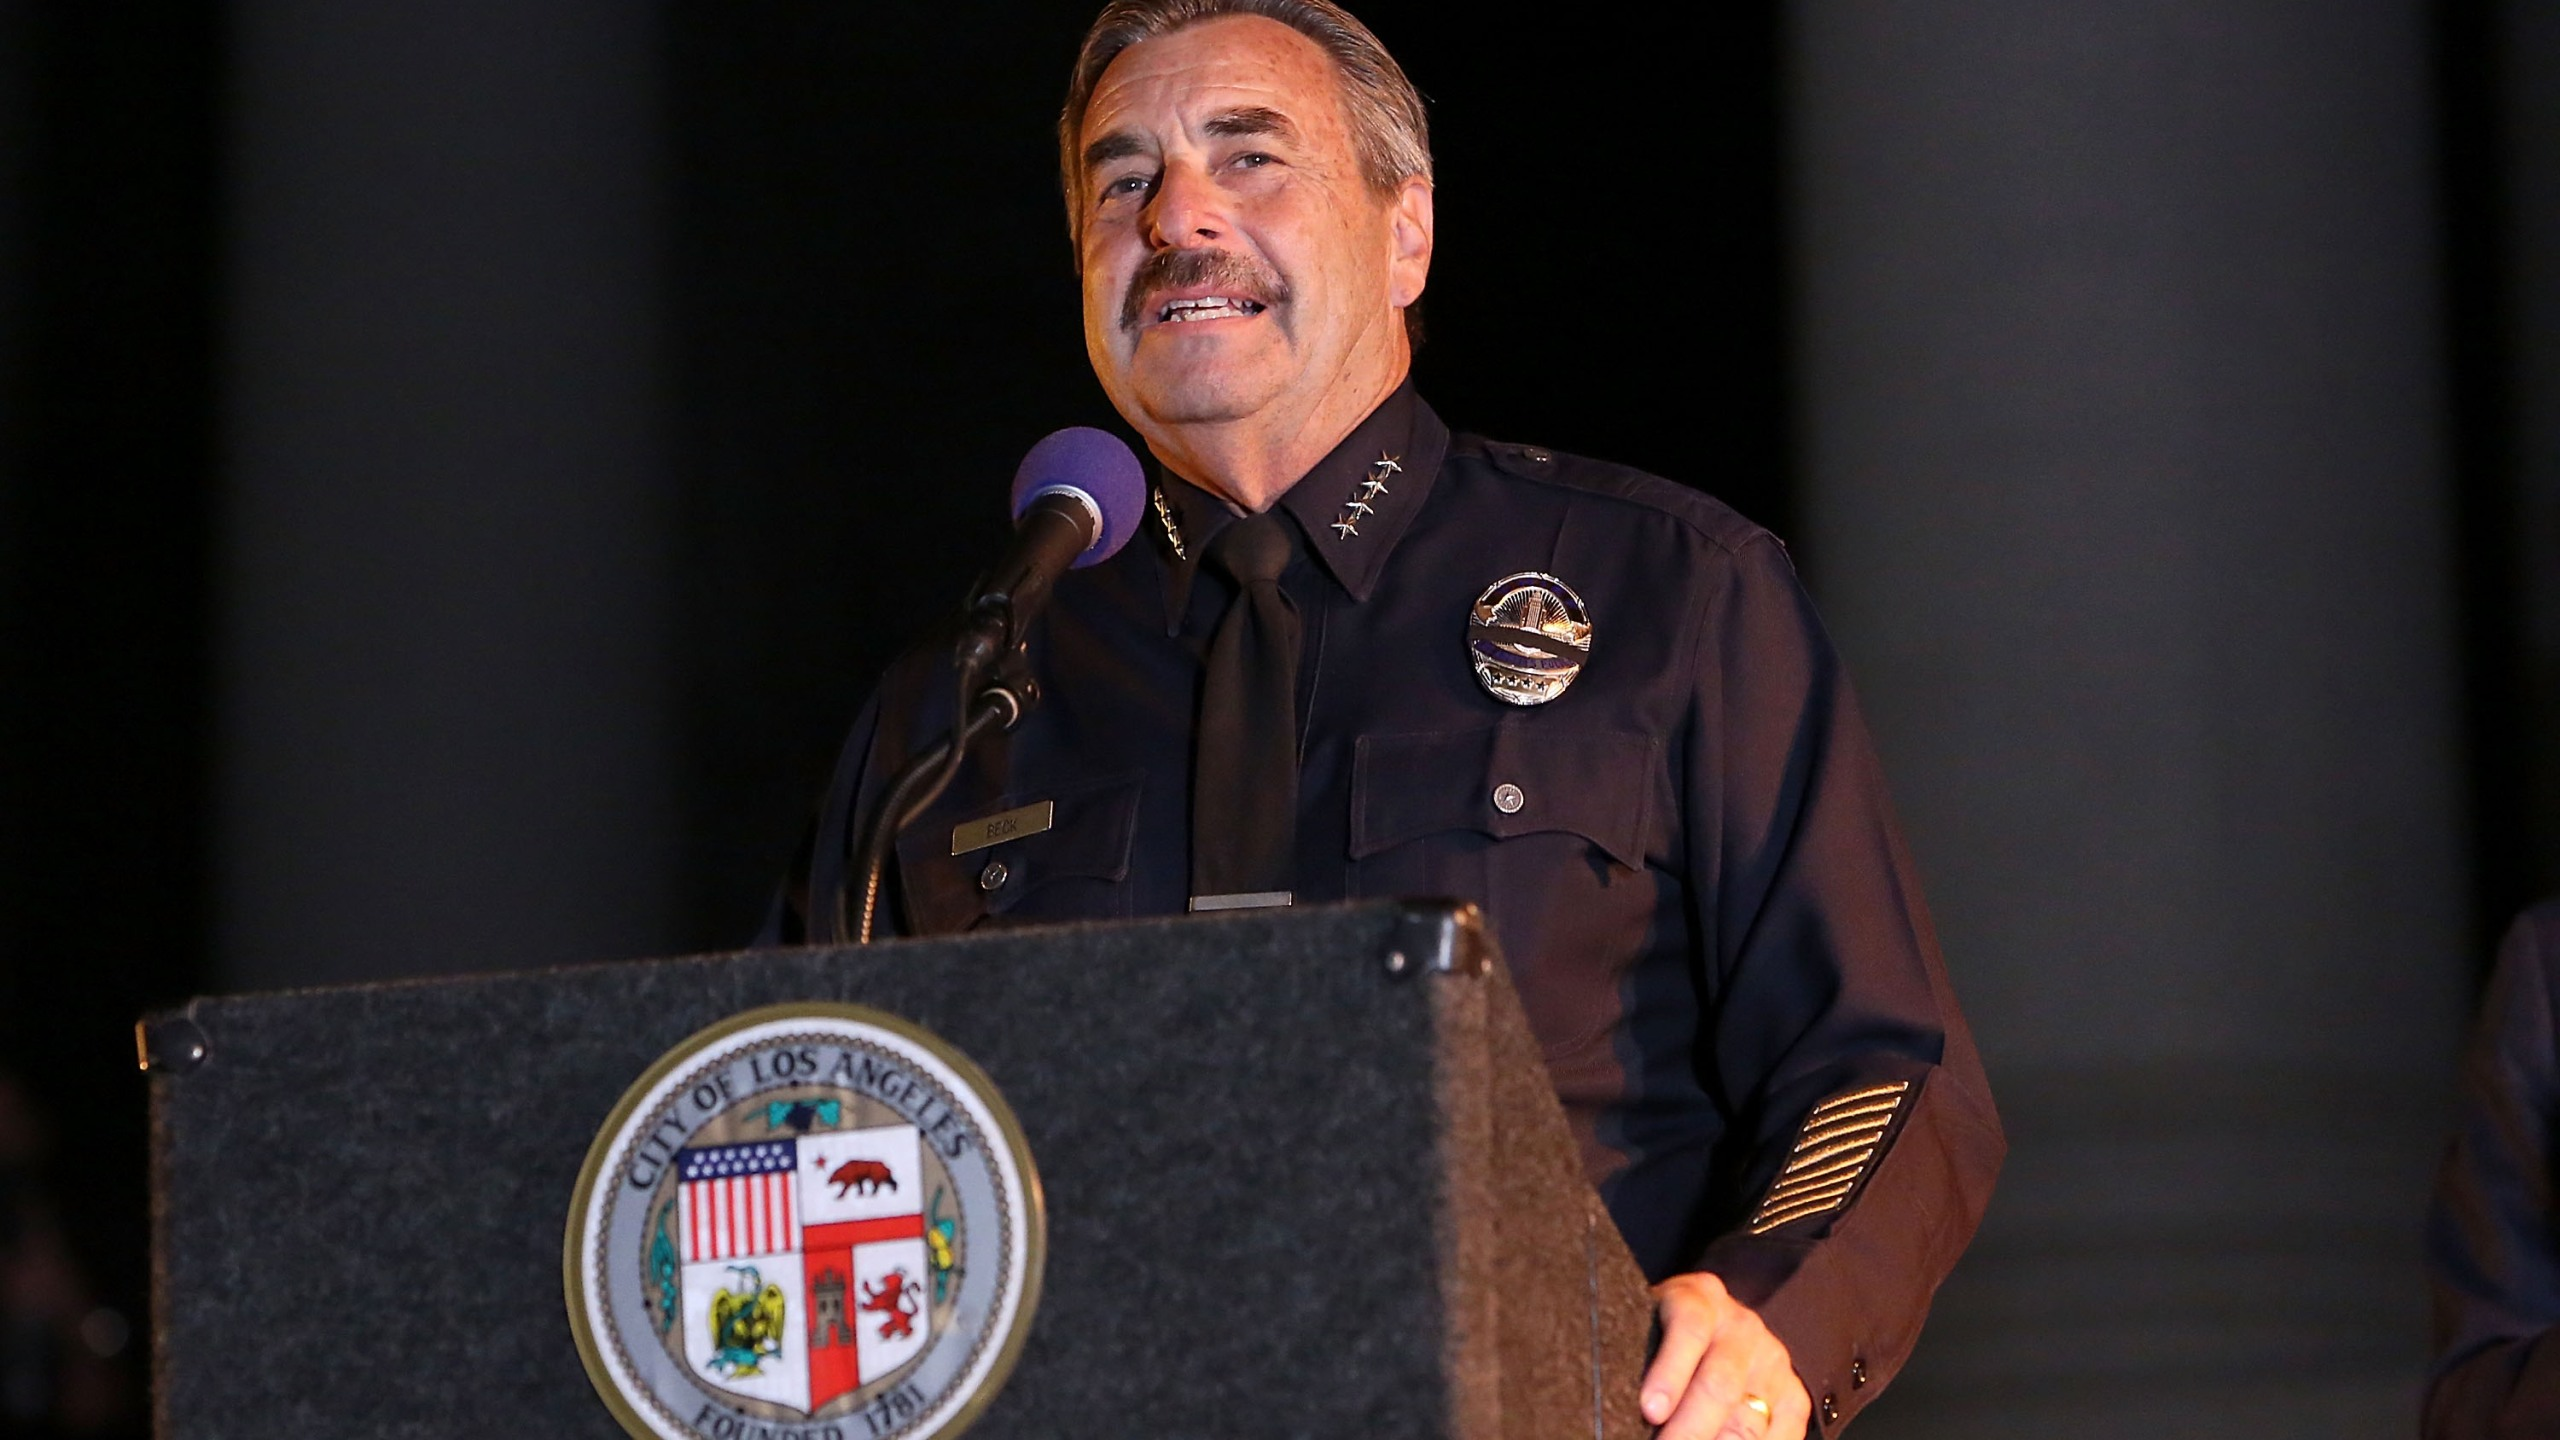 Los Angeles Police Department Chief Charlie Beck attends a ceremony honoring Adam West at Los Angeles City Hall on June 15, 2017. (Credit: Jesse Grant / Getty Images)